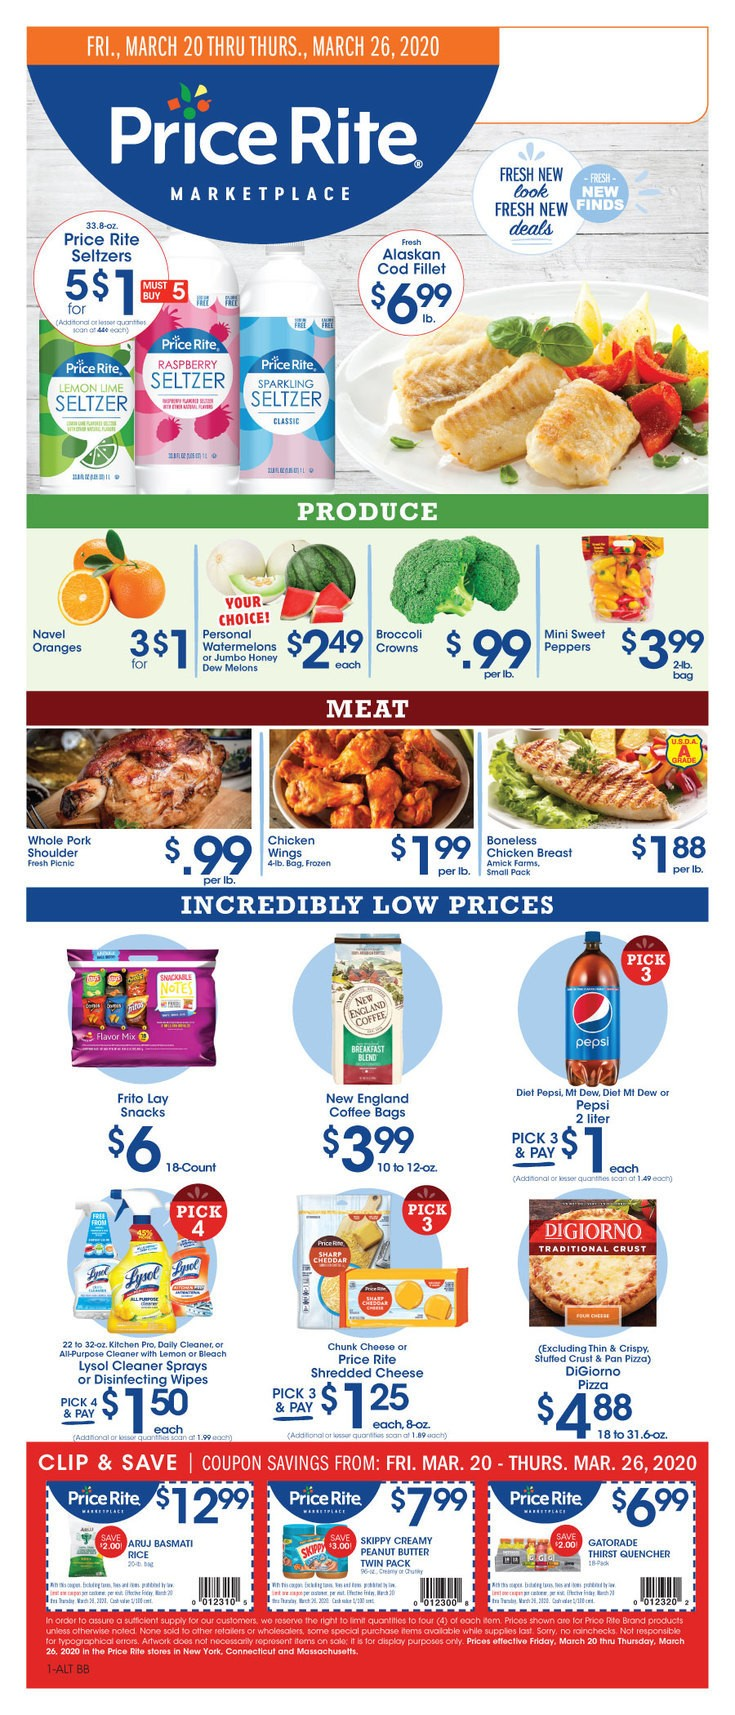 Price Rite Weekly Ad from March 20